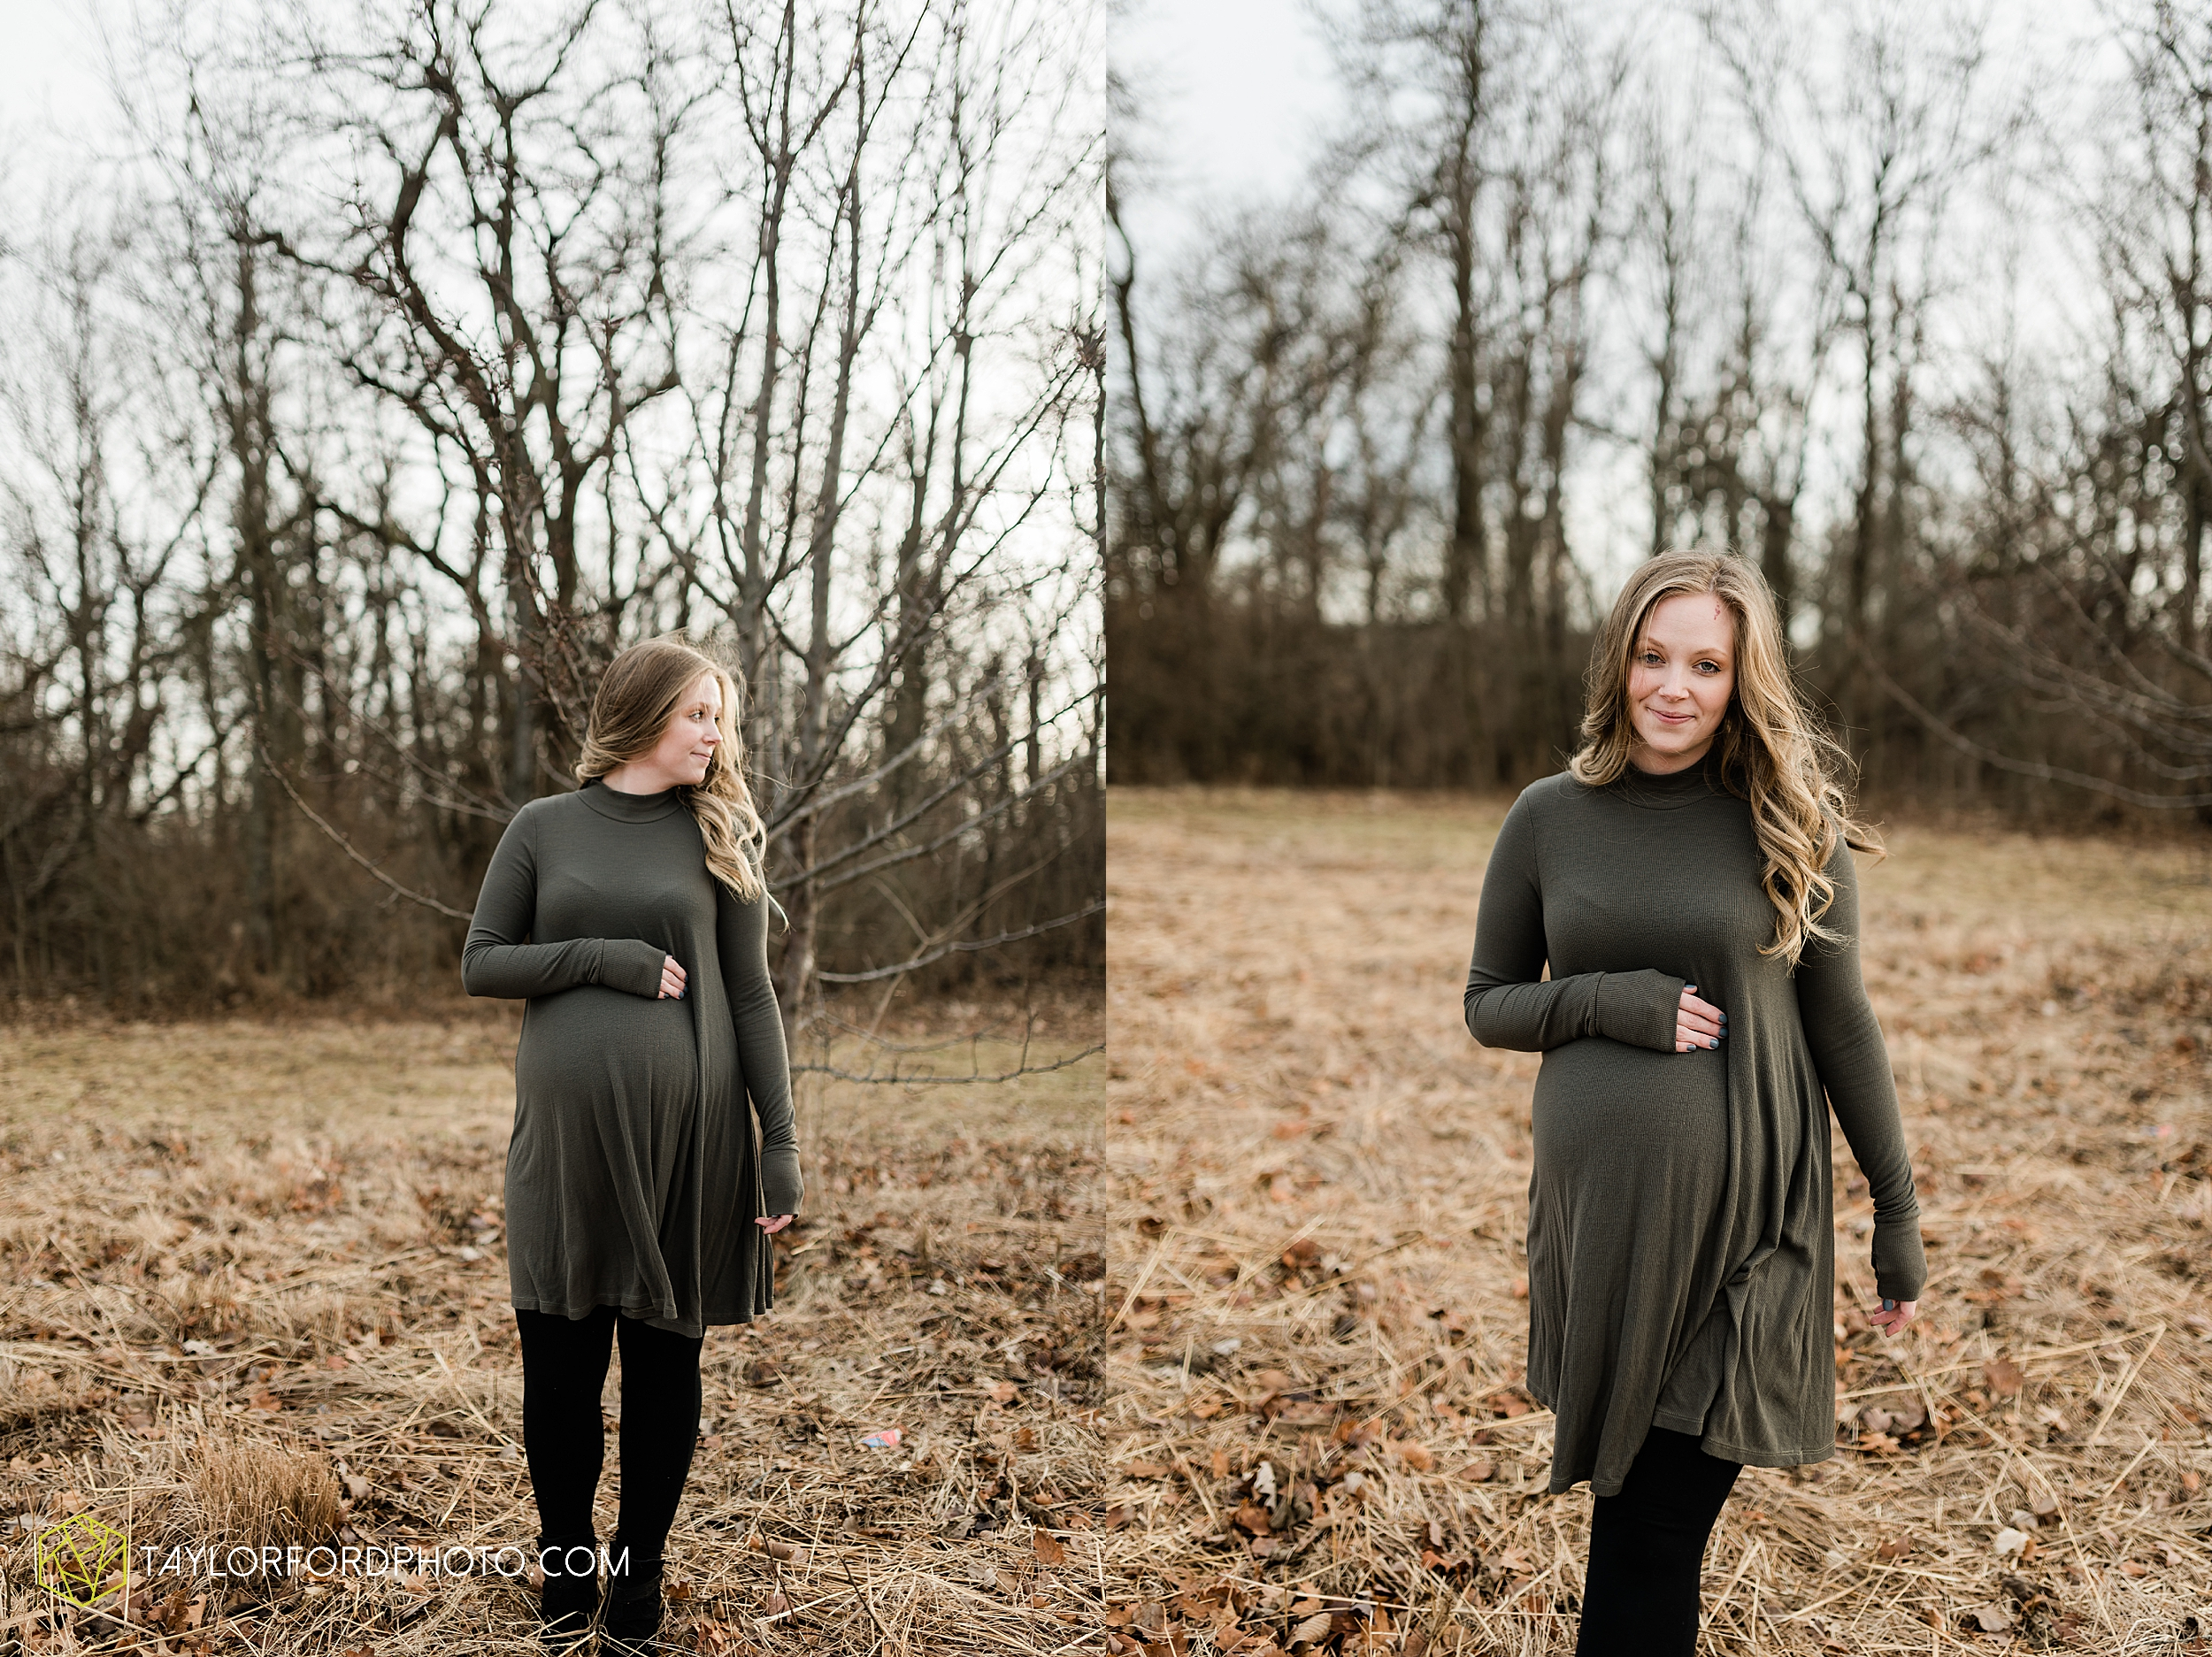 schafer-maternity-pregnant-at-home-fort-wayne-indiana-photography-taylor-ford-hirschy-photographer_2273.jpg